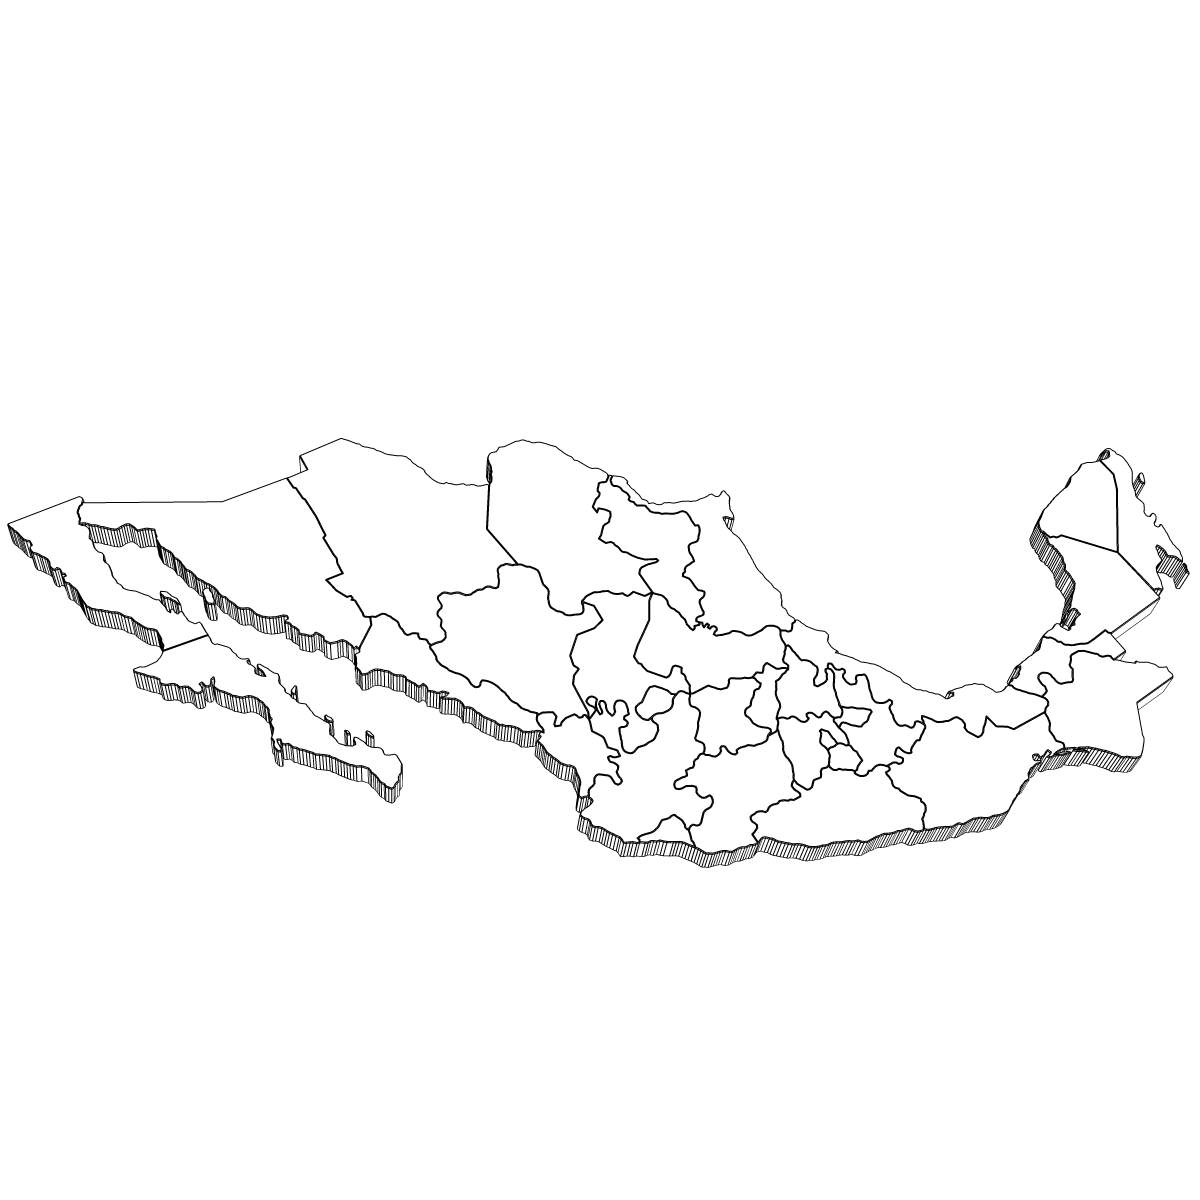 mexico map coloring page mexico map drawing at getdrawings free download mexico page coloring map